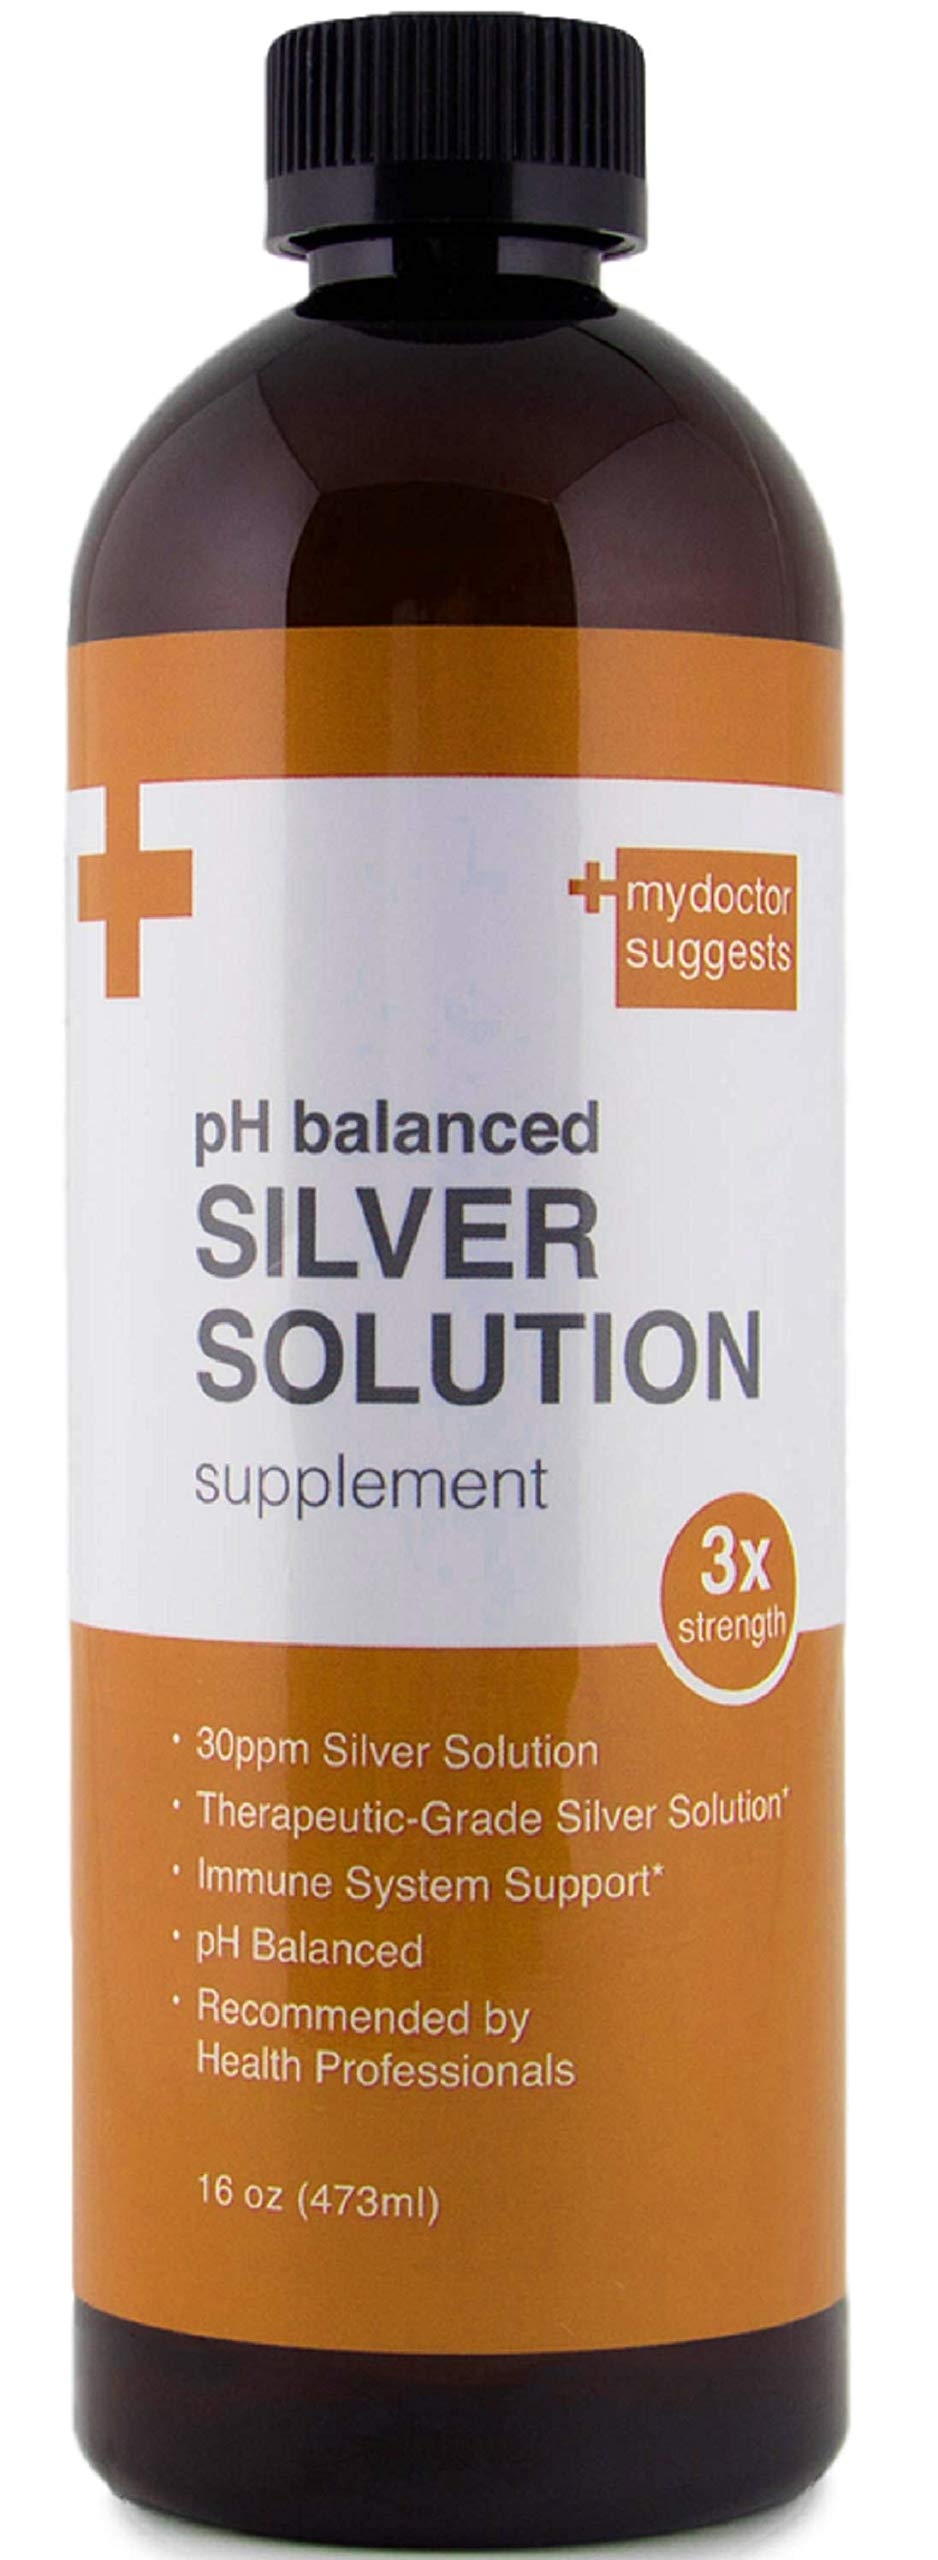 Structured Silver, Liquid Silver Solution pH Balanced 30ppm - Daily Silver Supplement for Immune Health - 16oz Bottle of Colloidal Silver Water by My Doctor Suggests